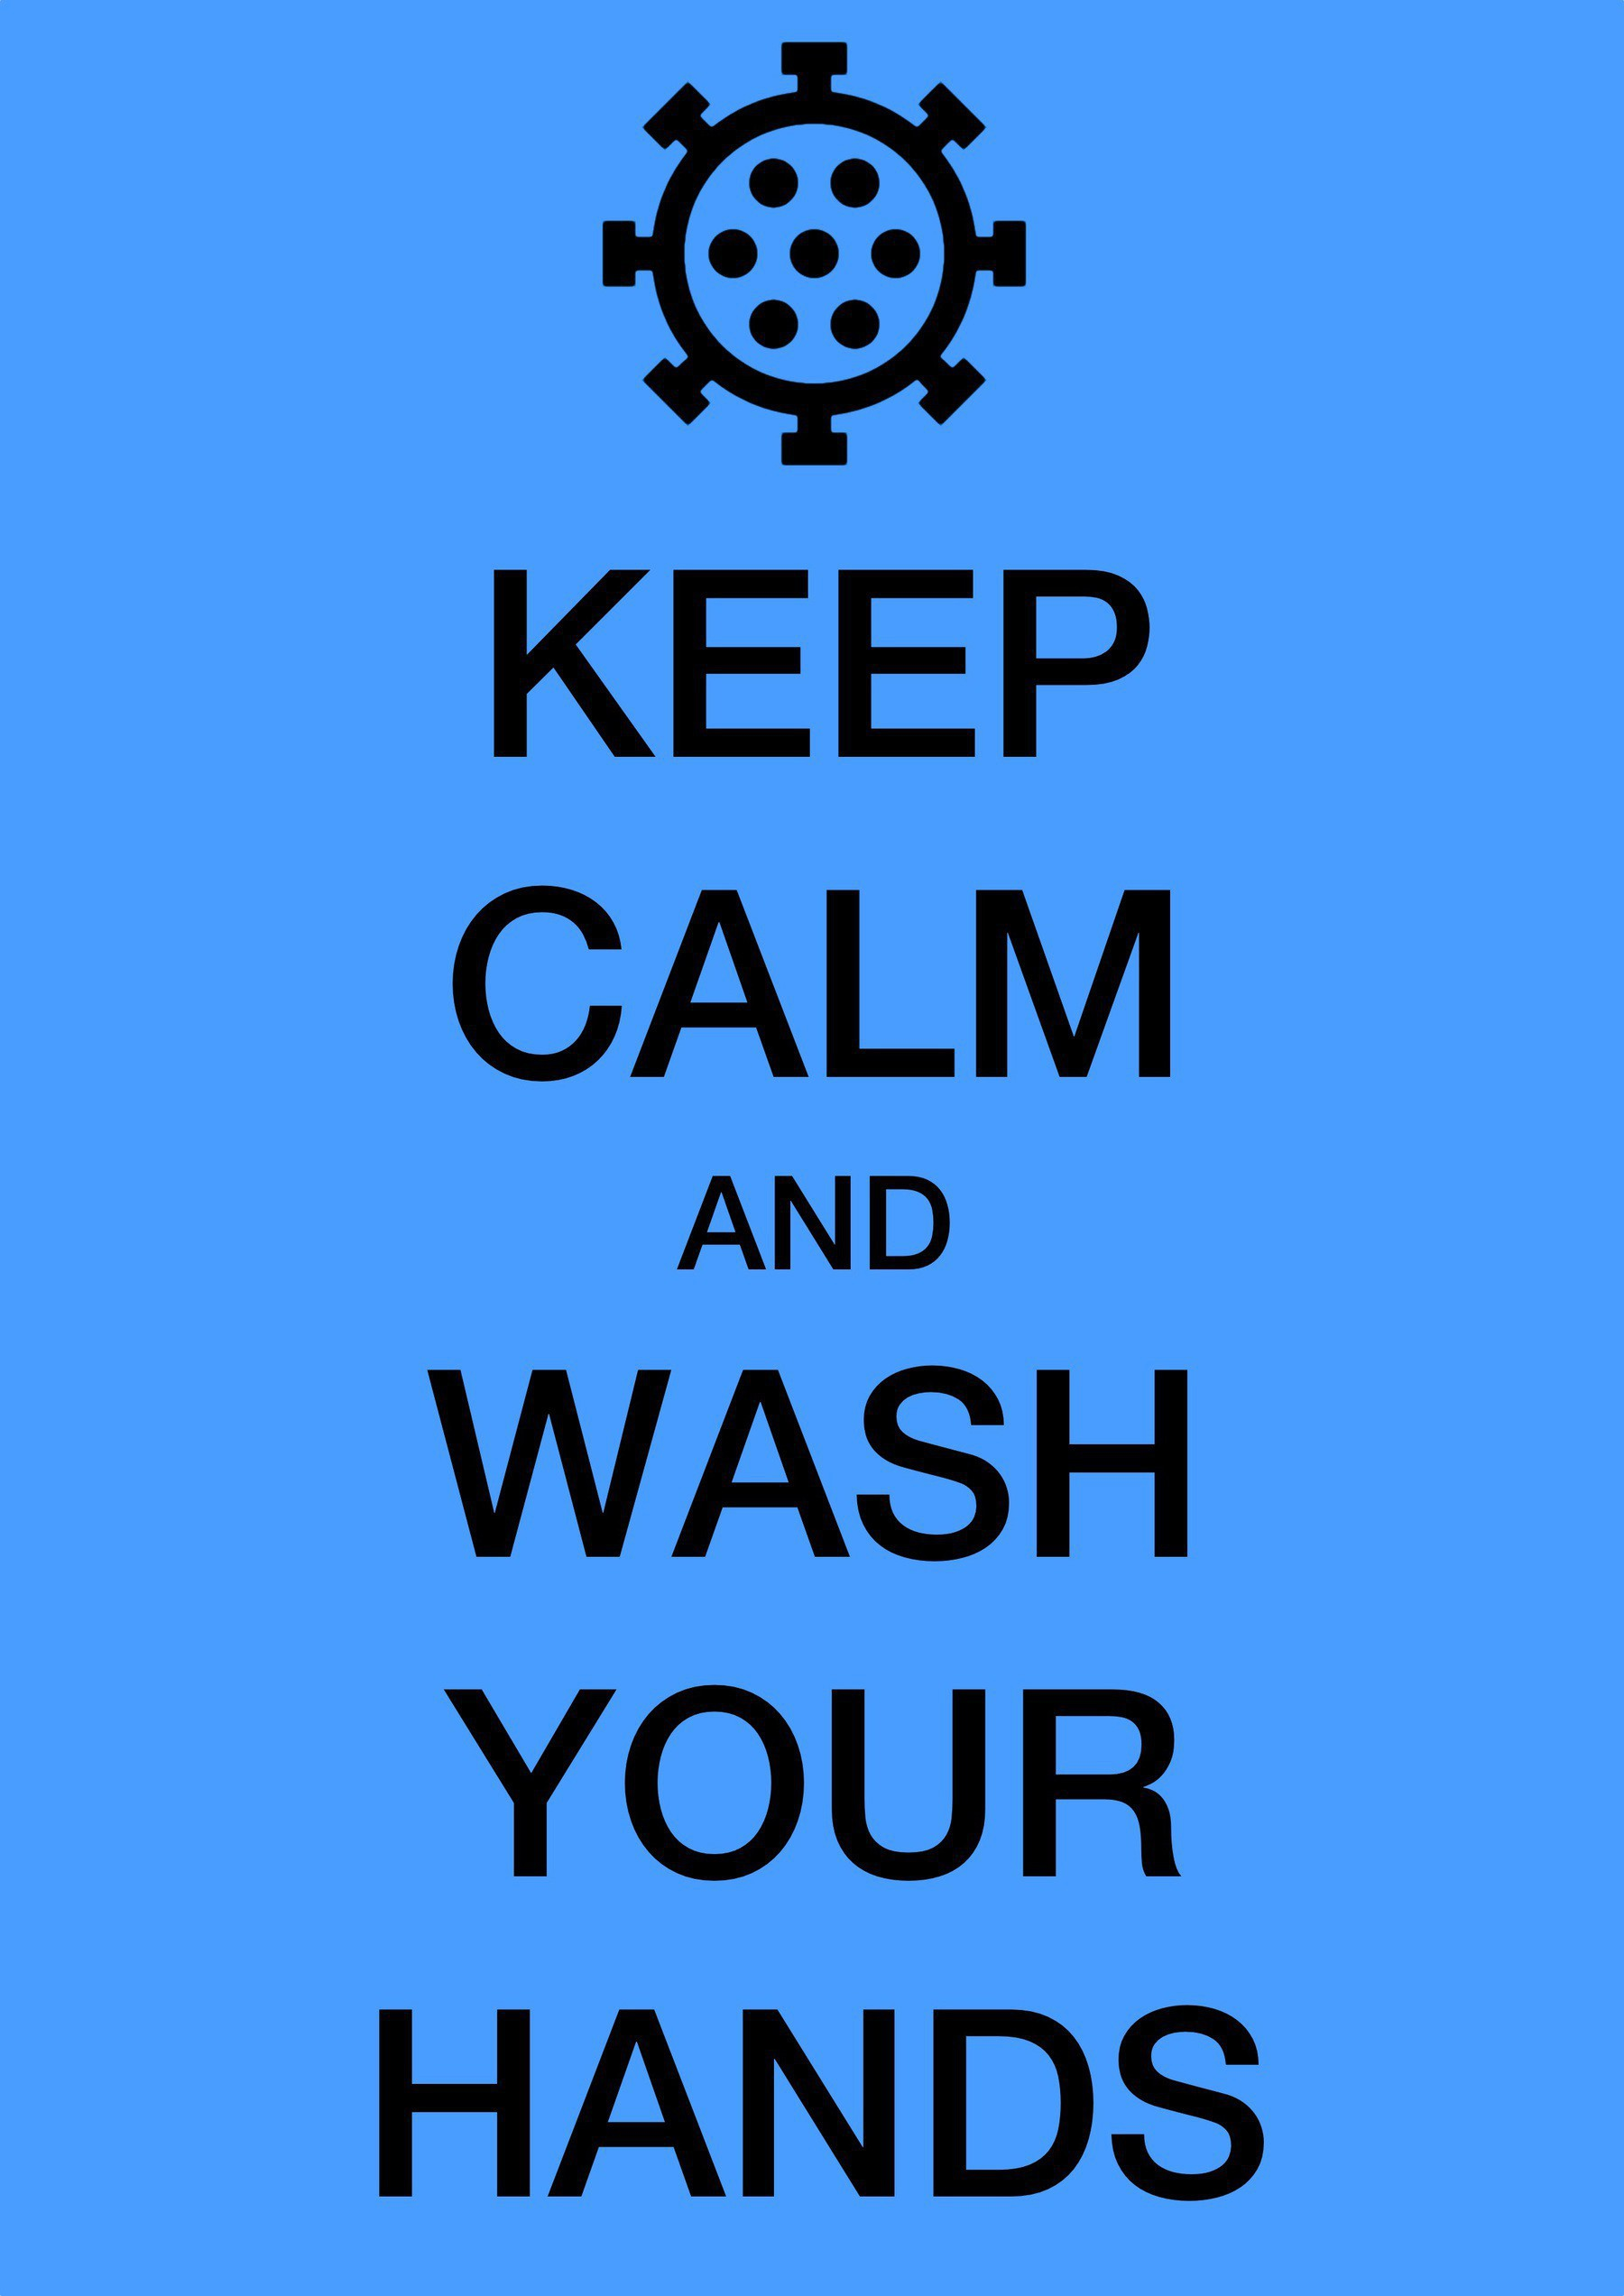 A poster in the style of the Keep Calm and Carry On posters of the second world war, but with a Carona virus on top instead of a crown, ad the word Keep Calm and Wash Your Hands